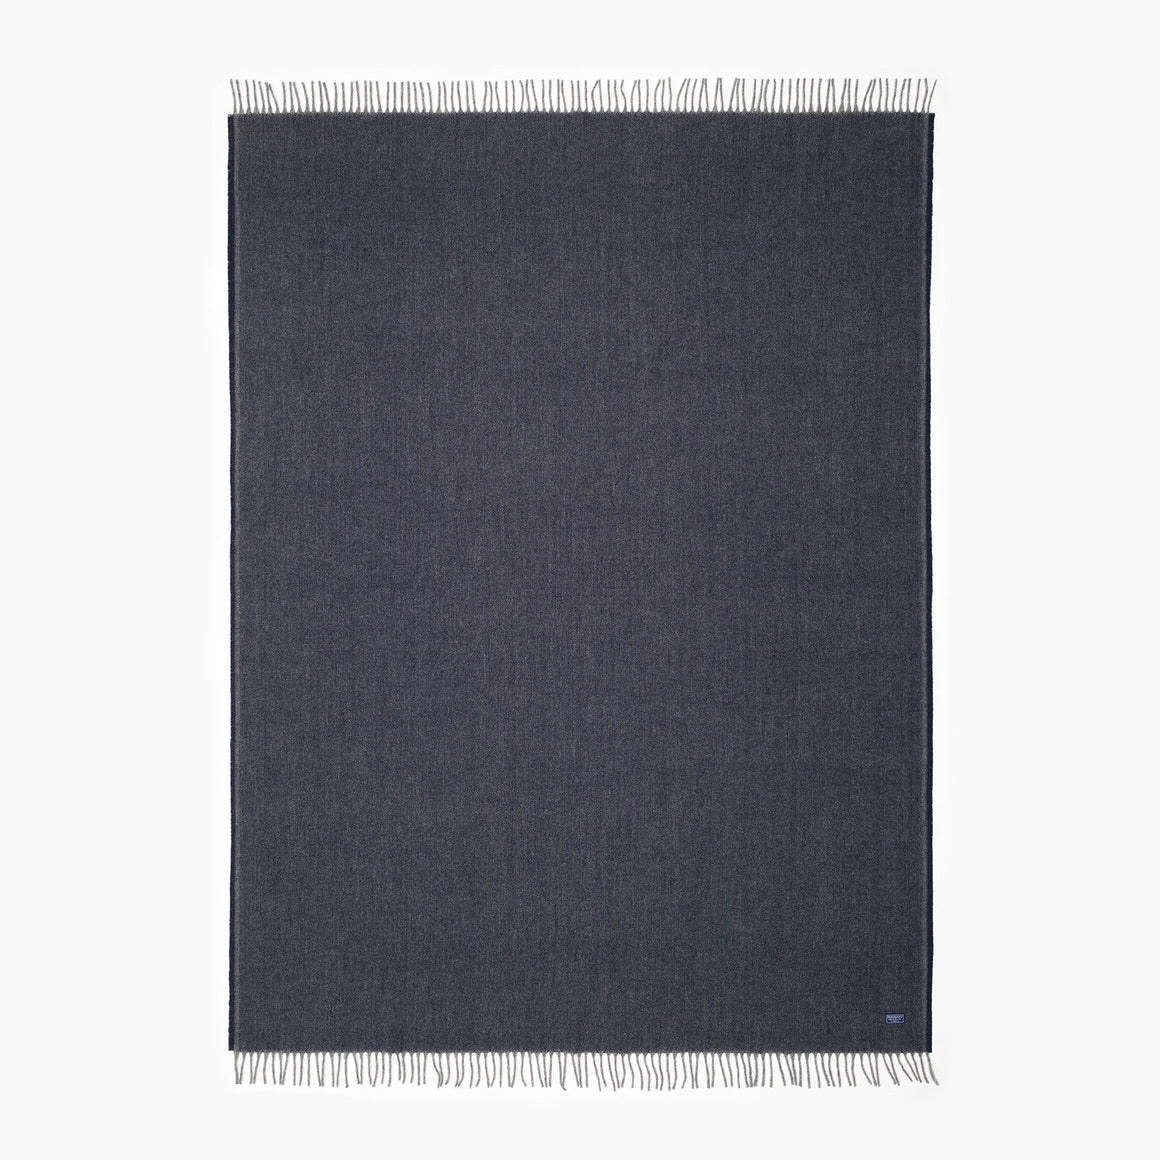 Ashby Twill Wool Throw - Ink Blue Twill